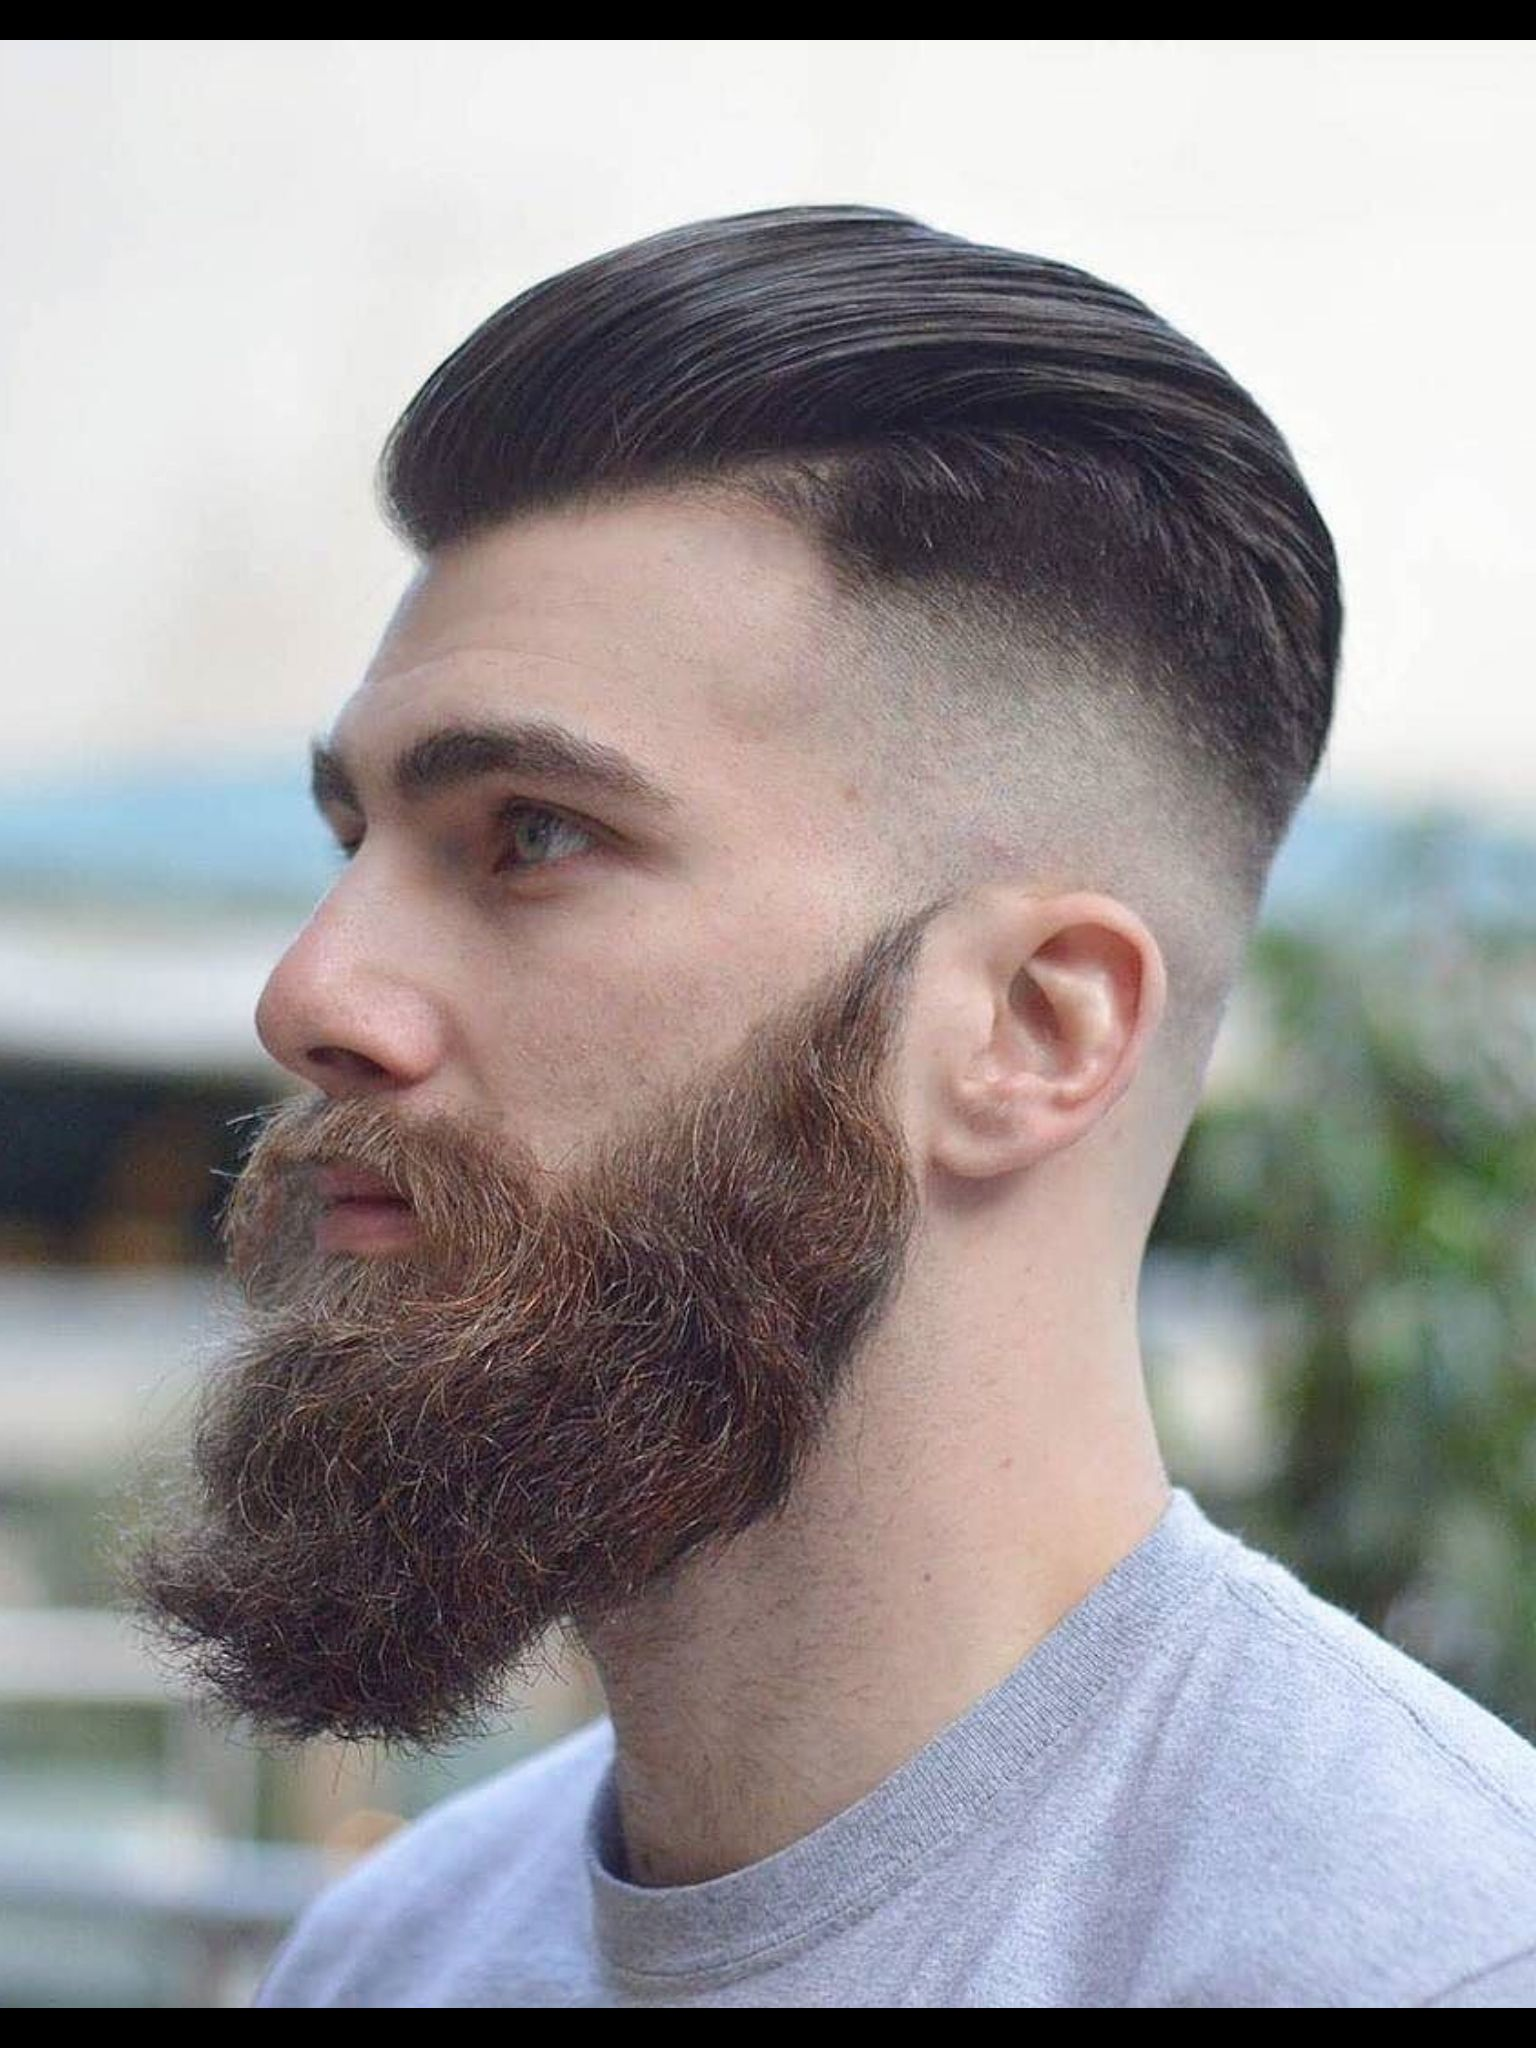 Fashion Mensfashion Menswear Mensstyle Streetstyle Style Outfit Mode Homme Grooming Hair Ducktail Beard Haircuts For Men Beard Styles For Men